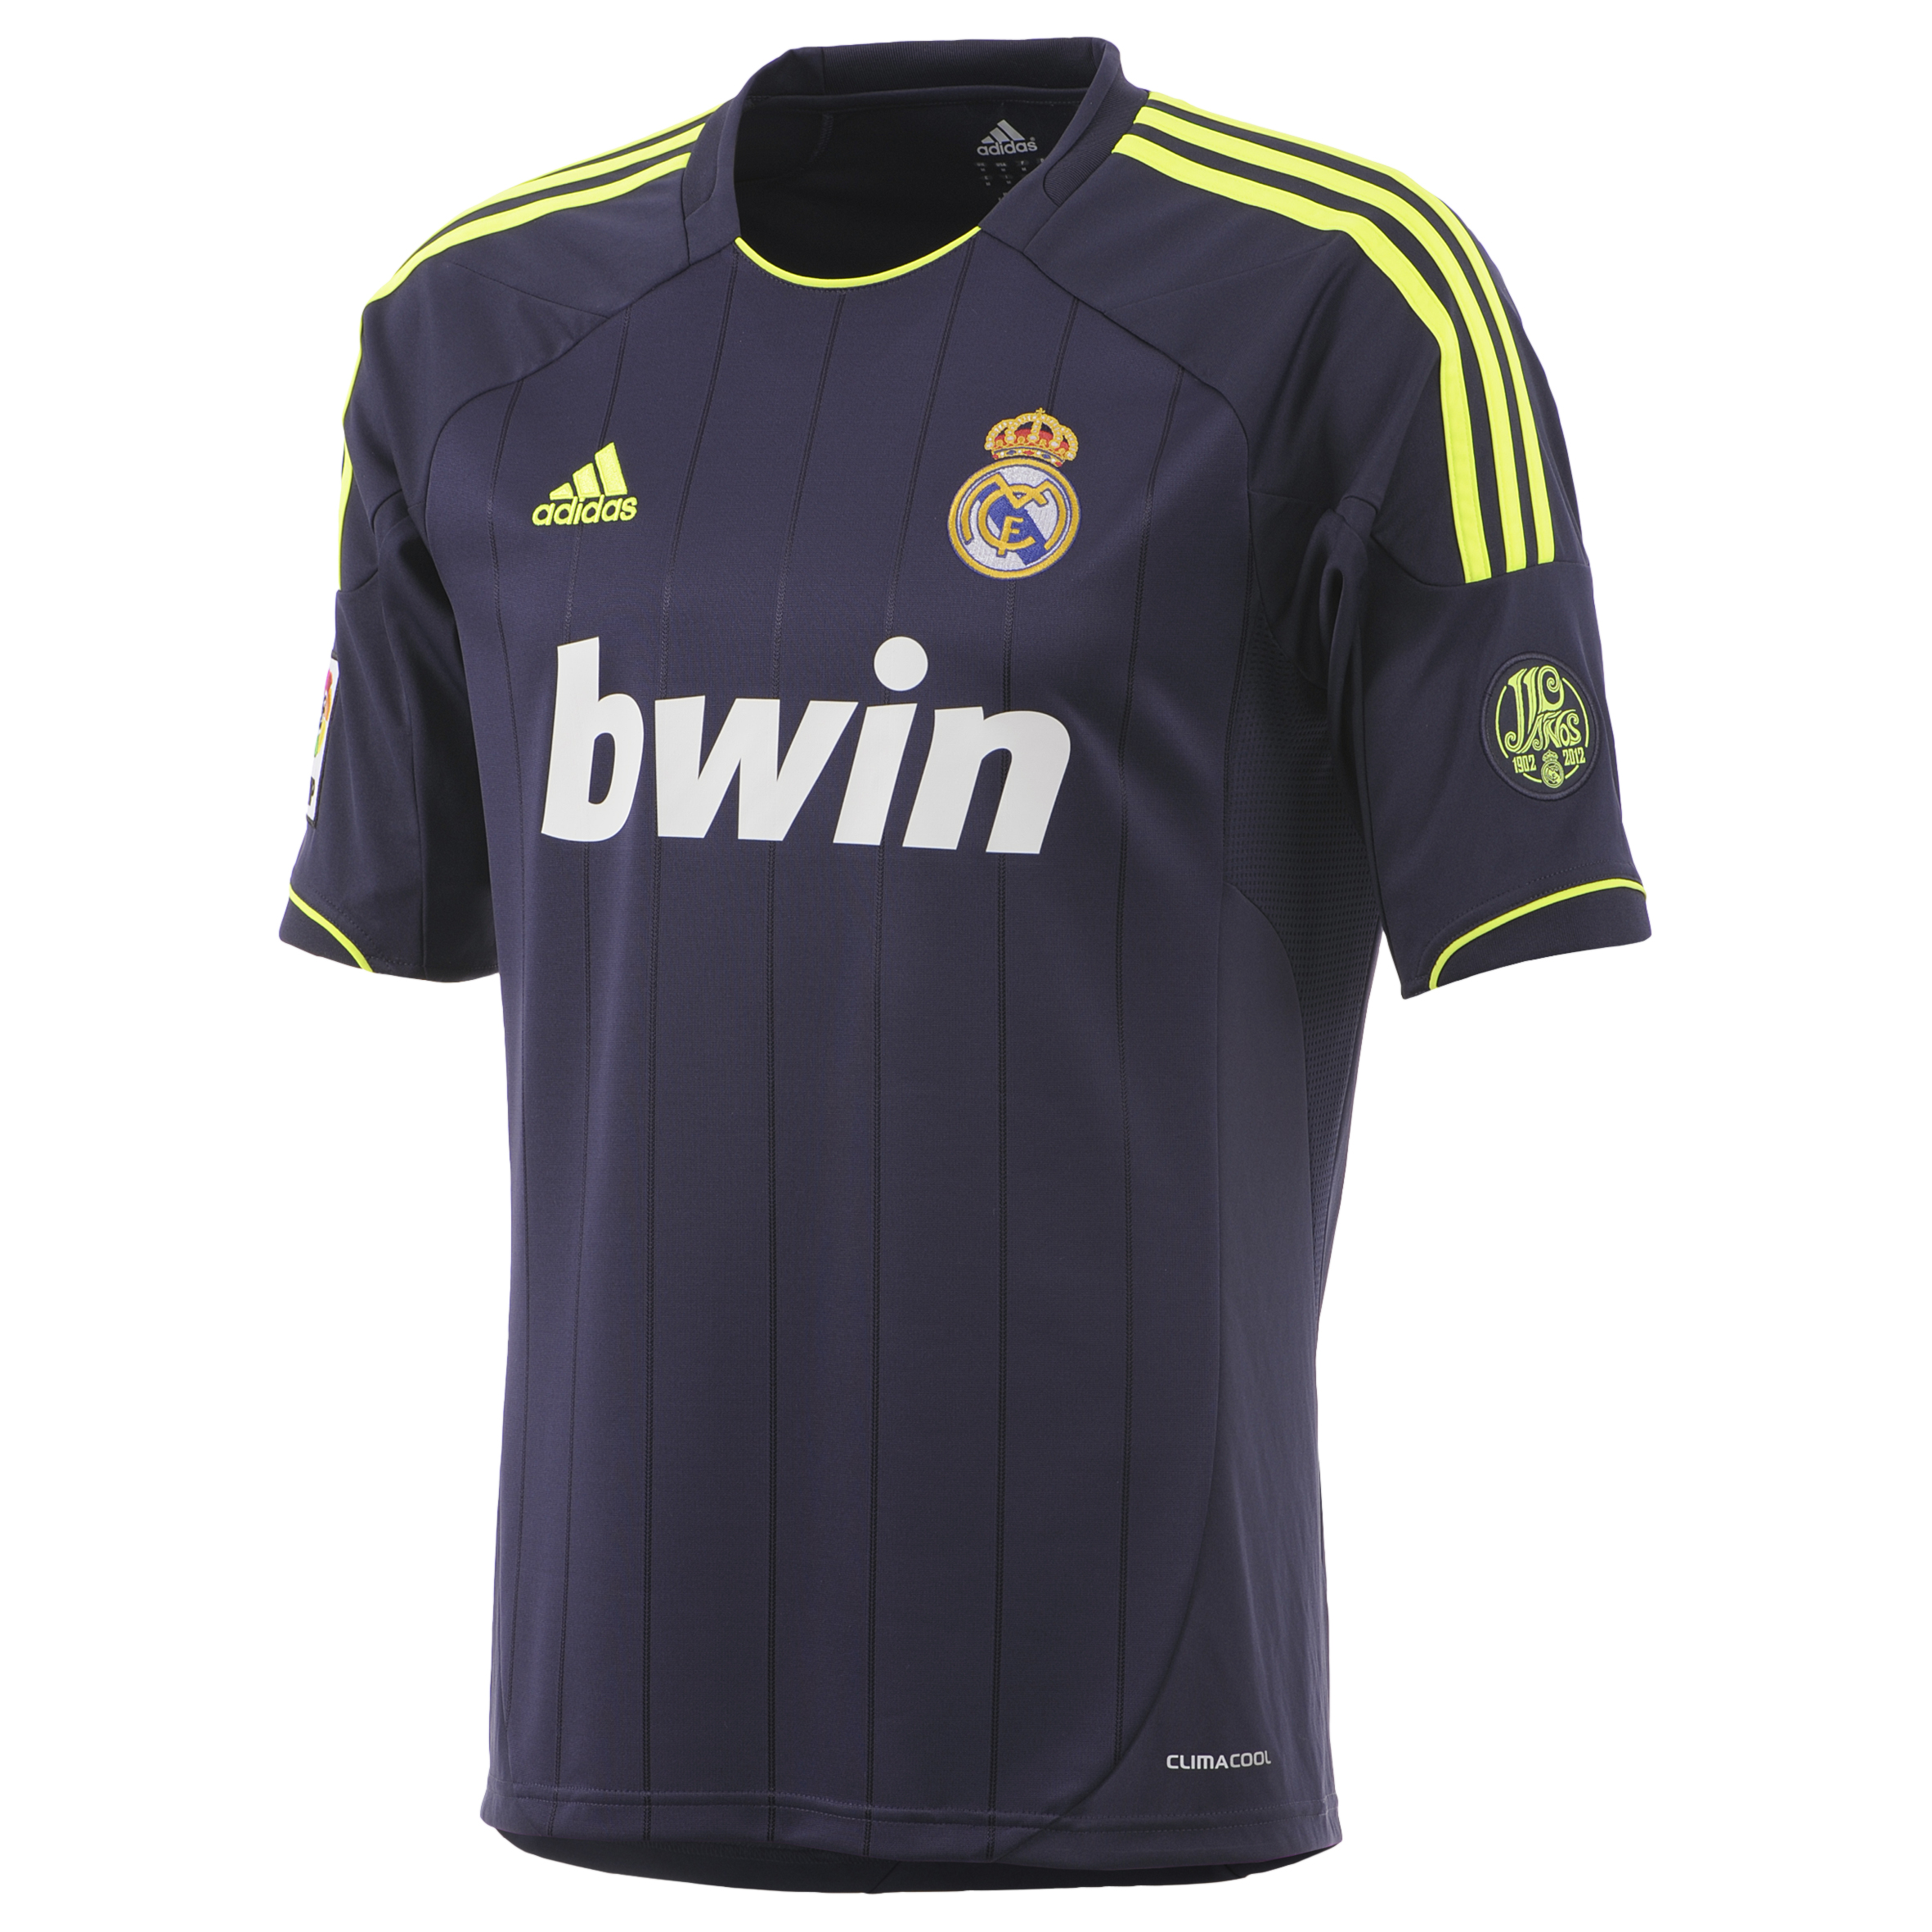 Buy Real Madrid Away Kit 2012/13 Youths